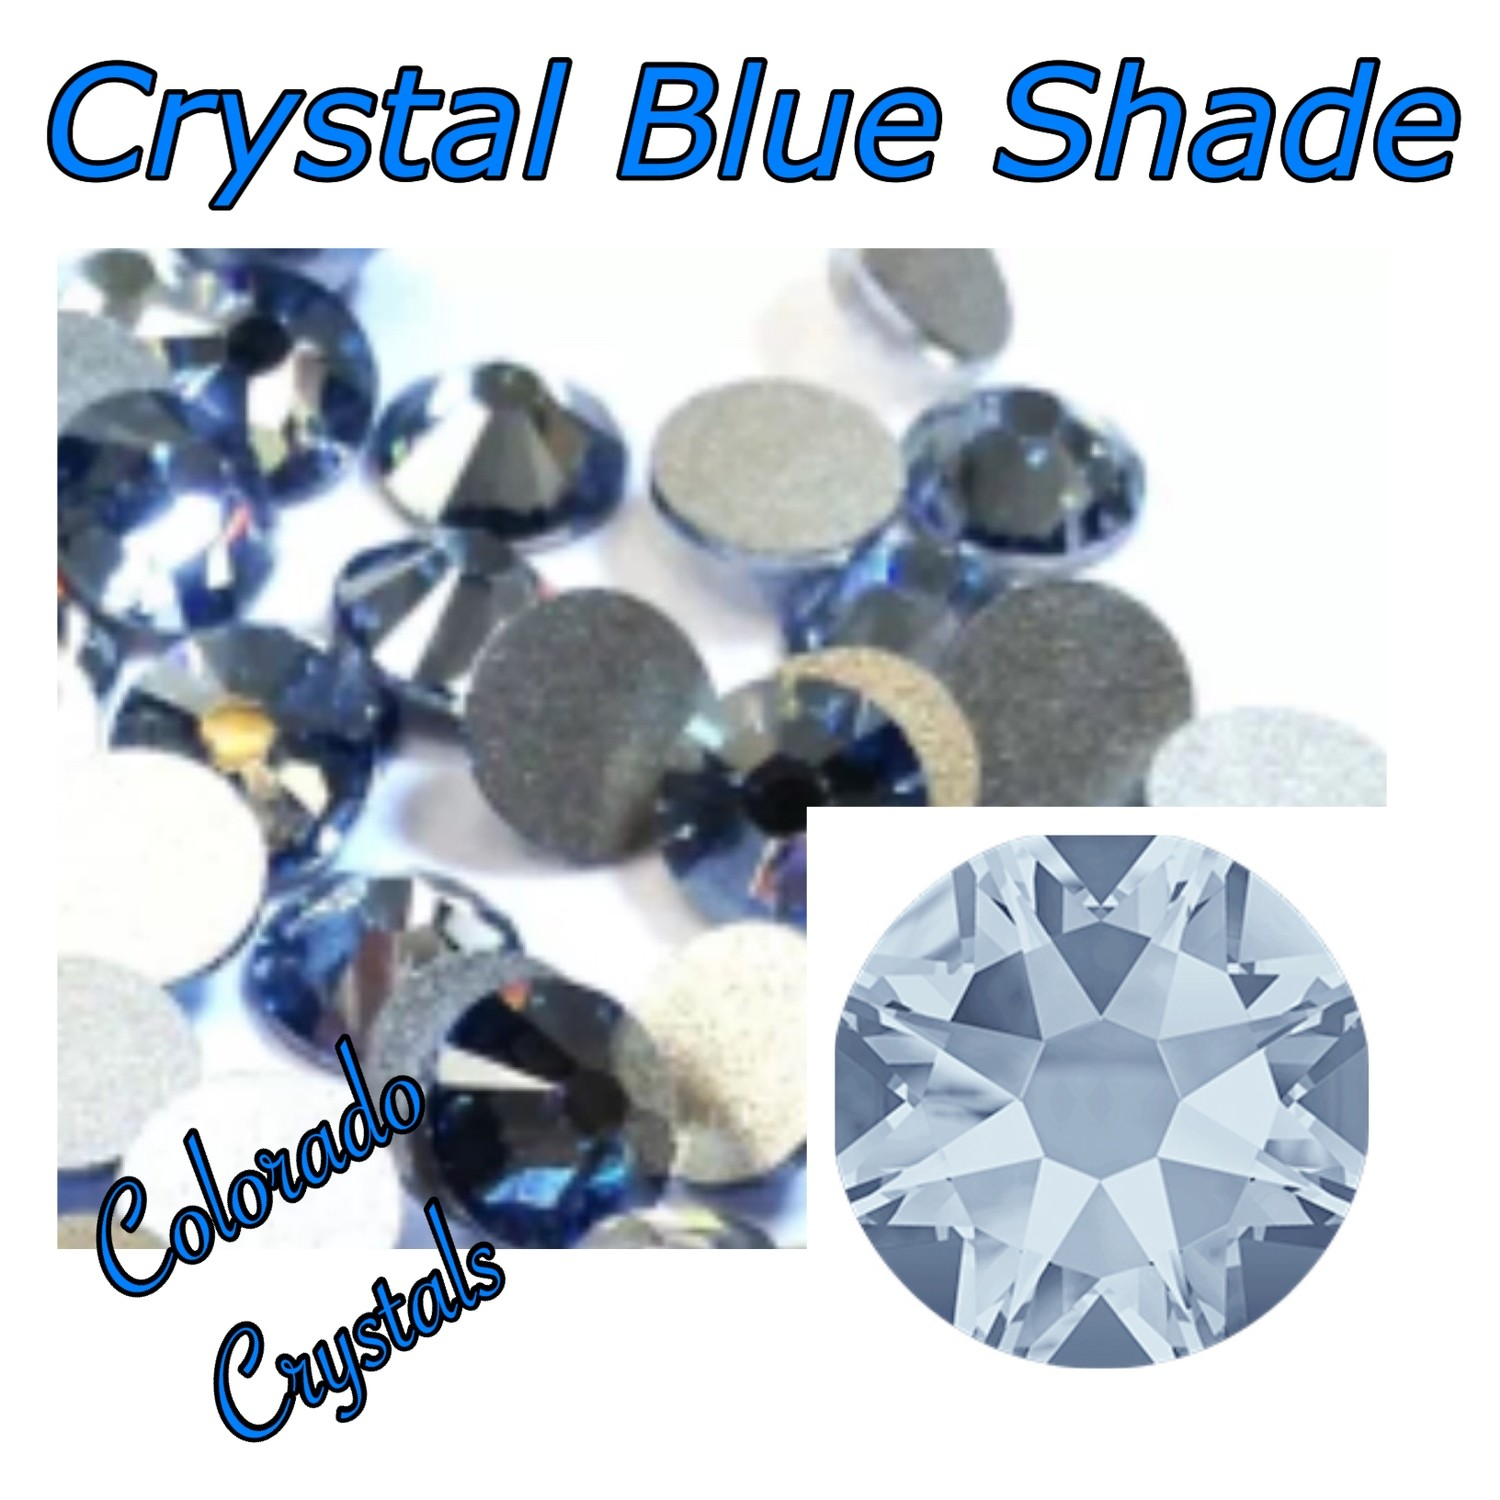 Blue Shade (Crystal) 16ss 2088